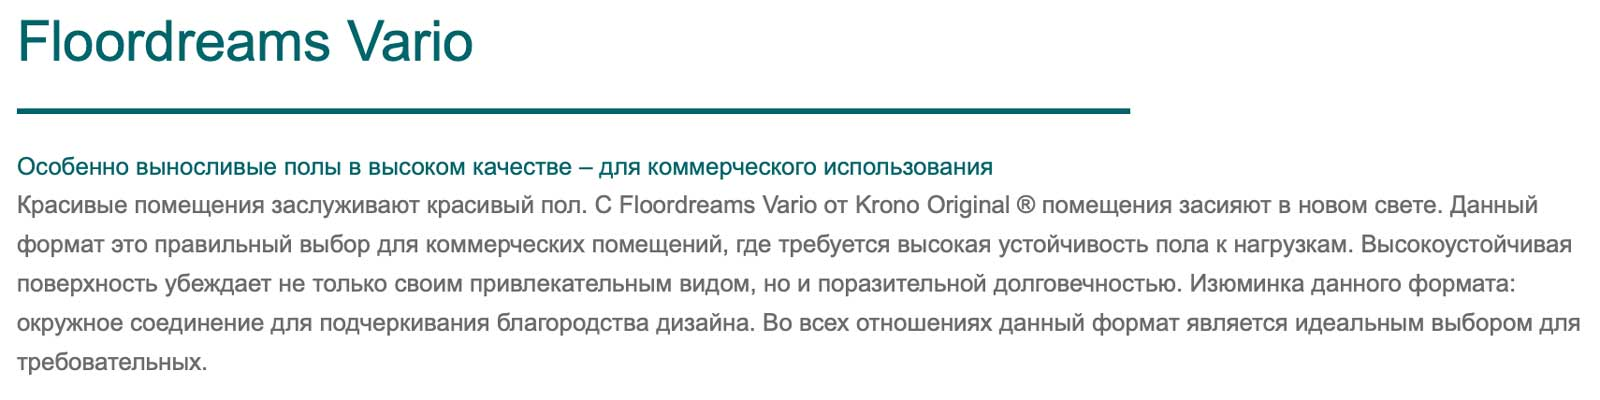 Описания FLOORDREAMS VARIO